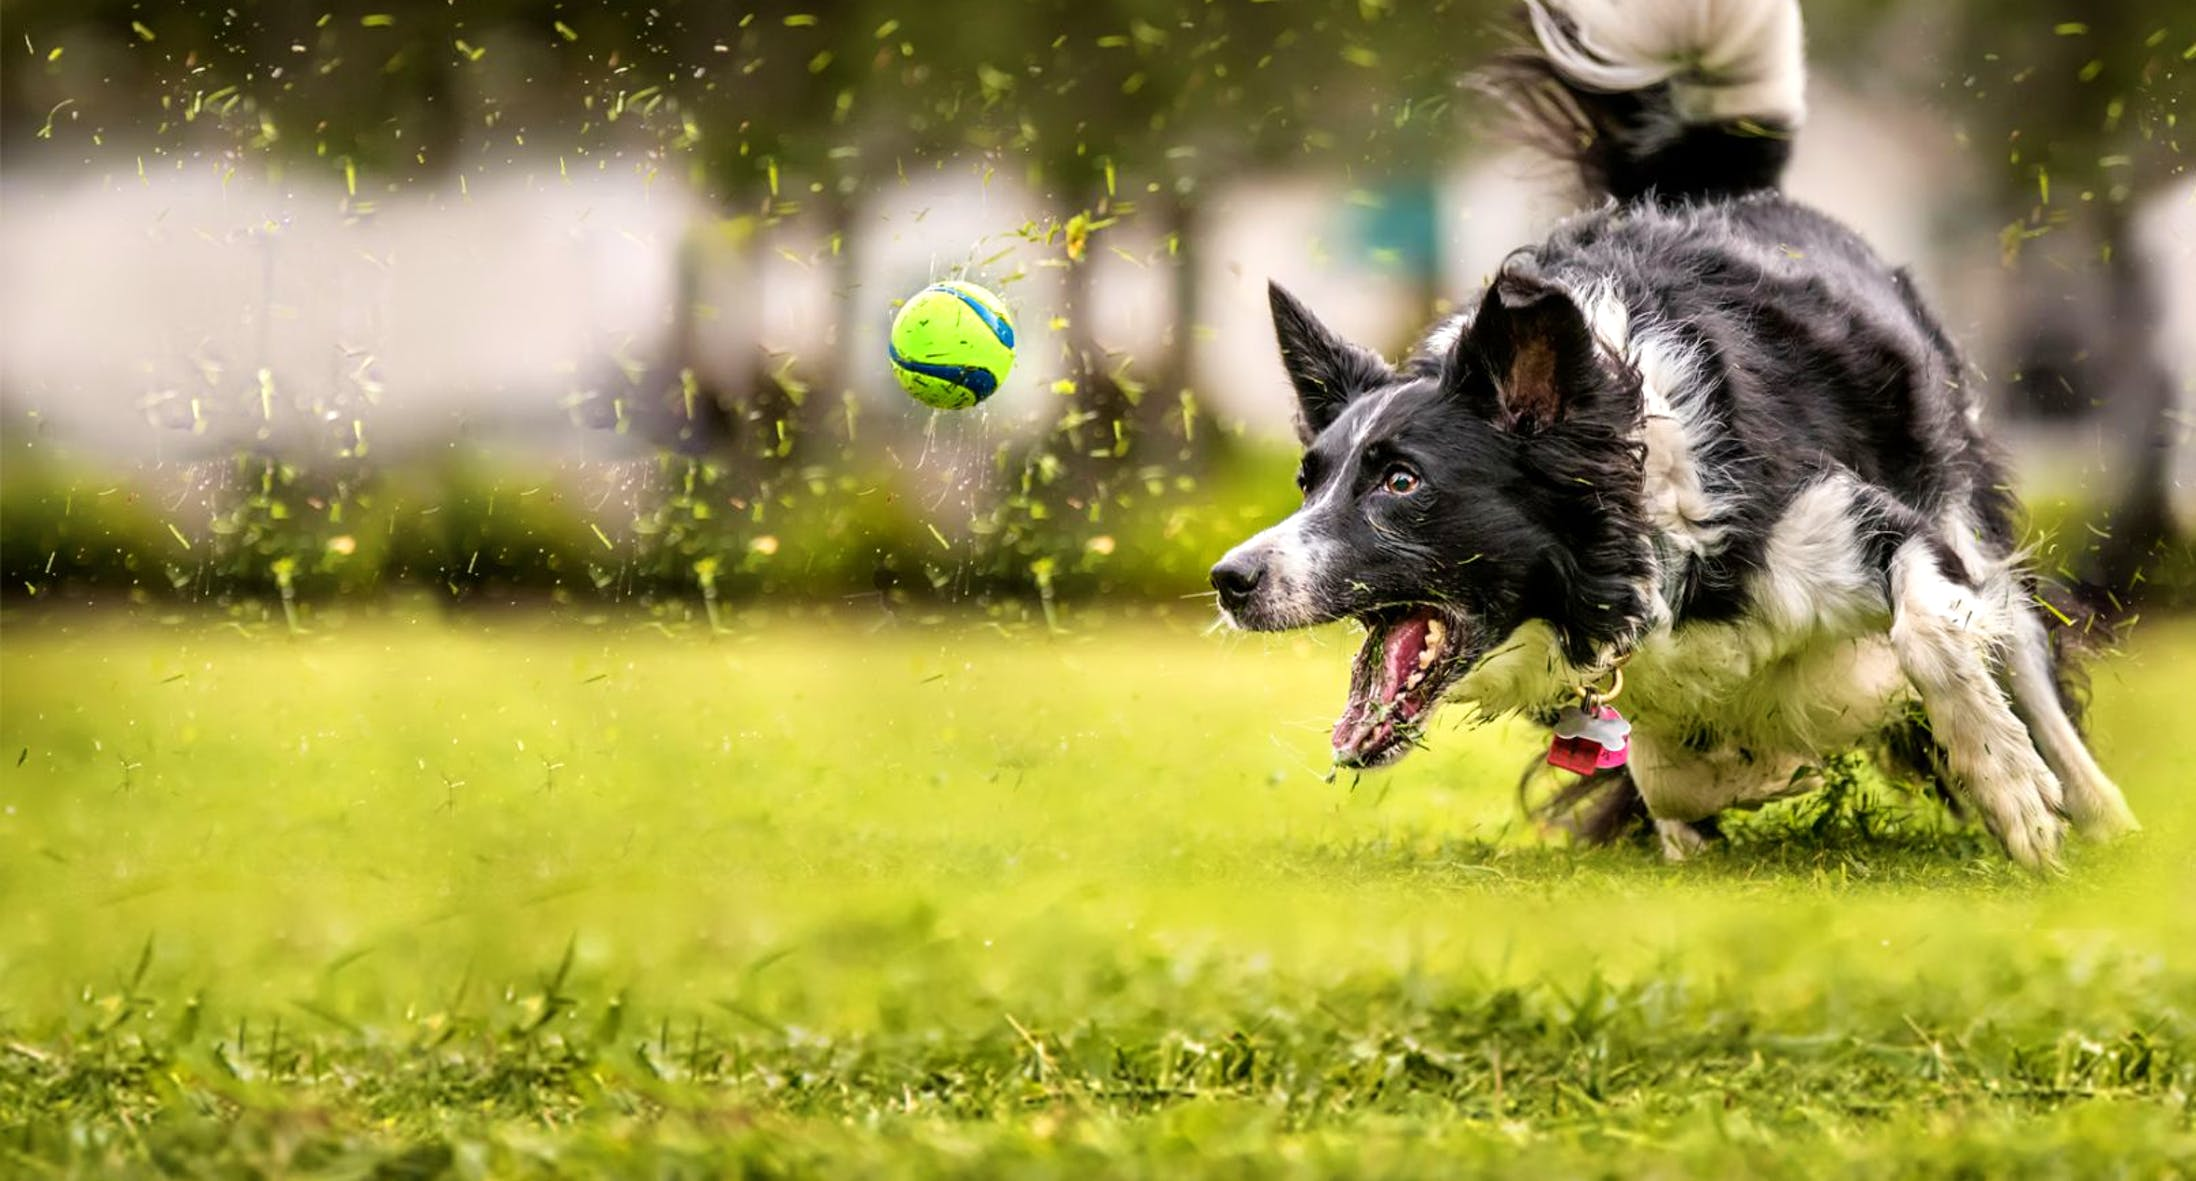 Black and white Border Collie chasing a ball